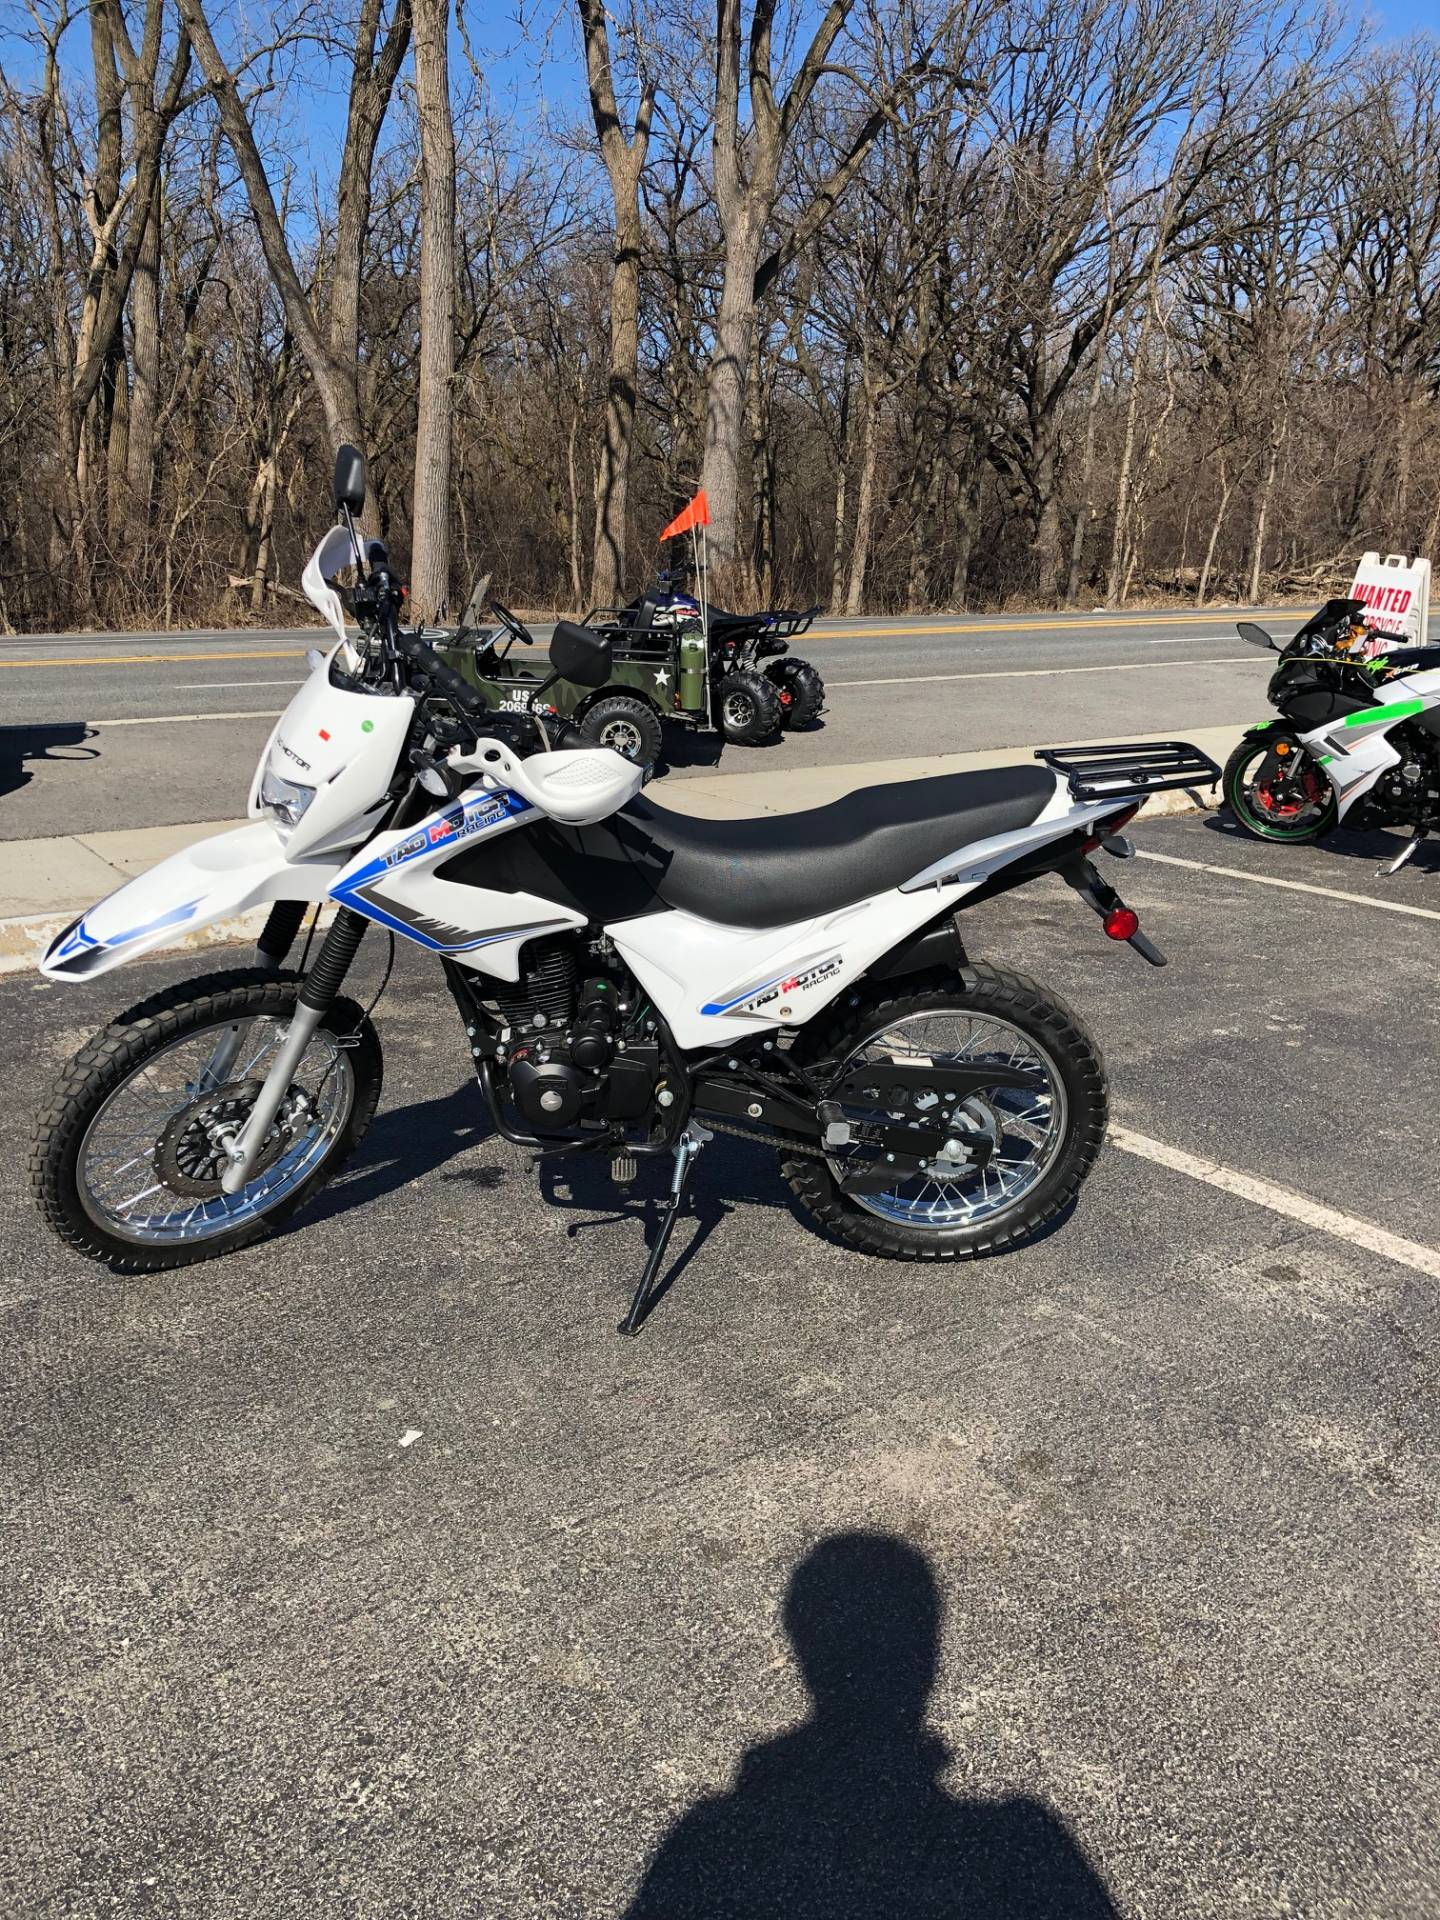 2019 Tao Motor 230cc in Forest View, Illinois - Photo 1